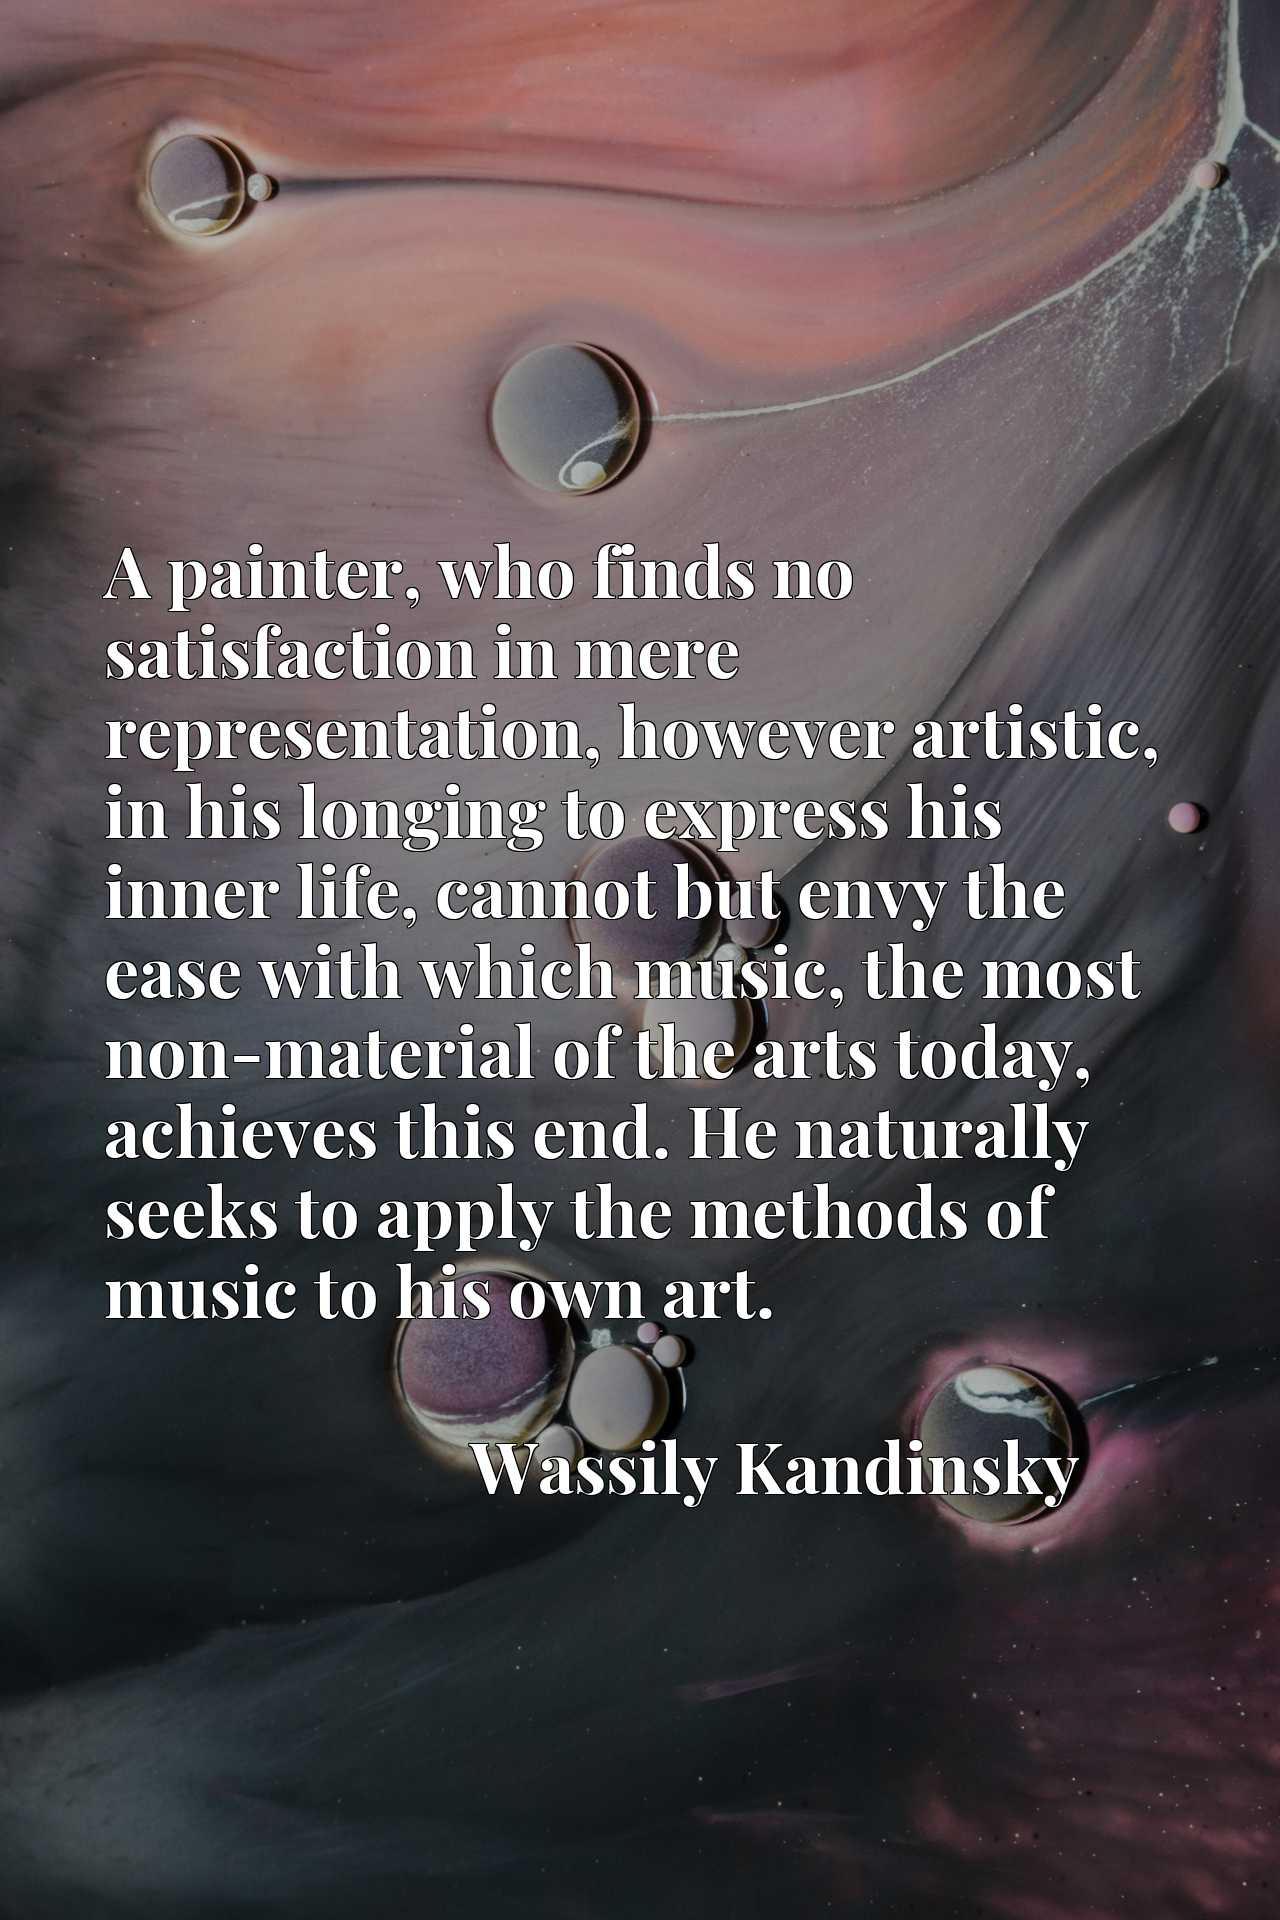 A painter, who finds no satisfaction in mere representation, however artistic, in his longing to express his inner life, cannot but envy the ease with which music, the most non-material of the arts today, achieves this end. He naturally seeks to apply the methods of music to his own art.